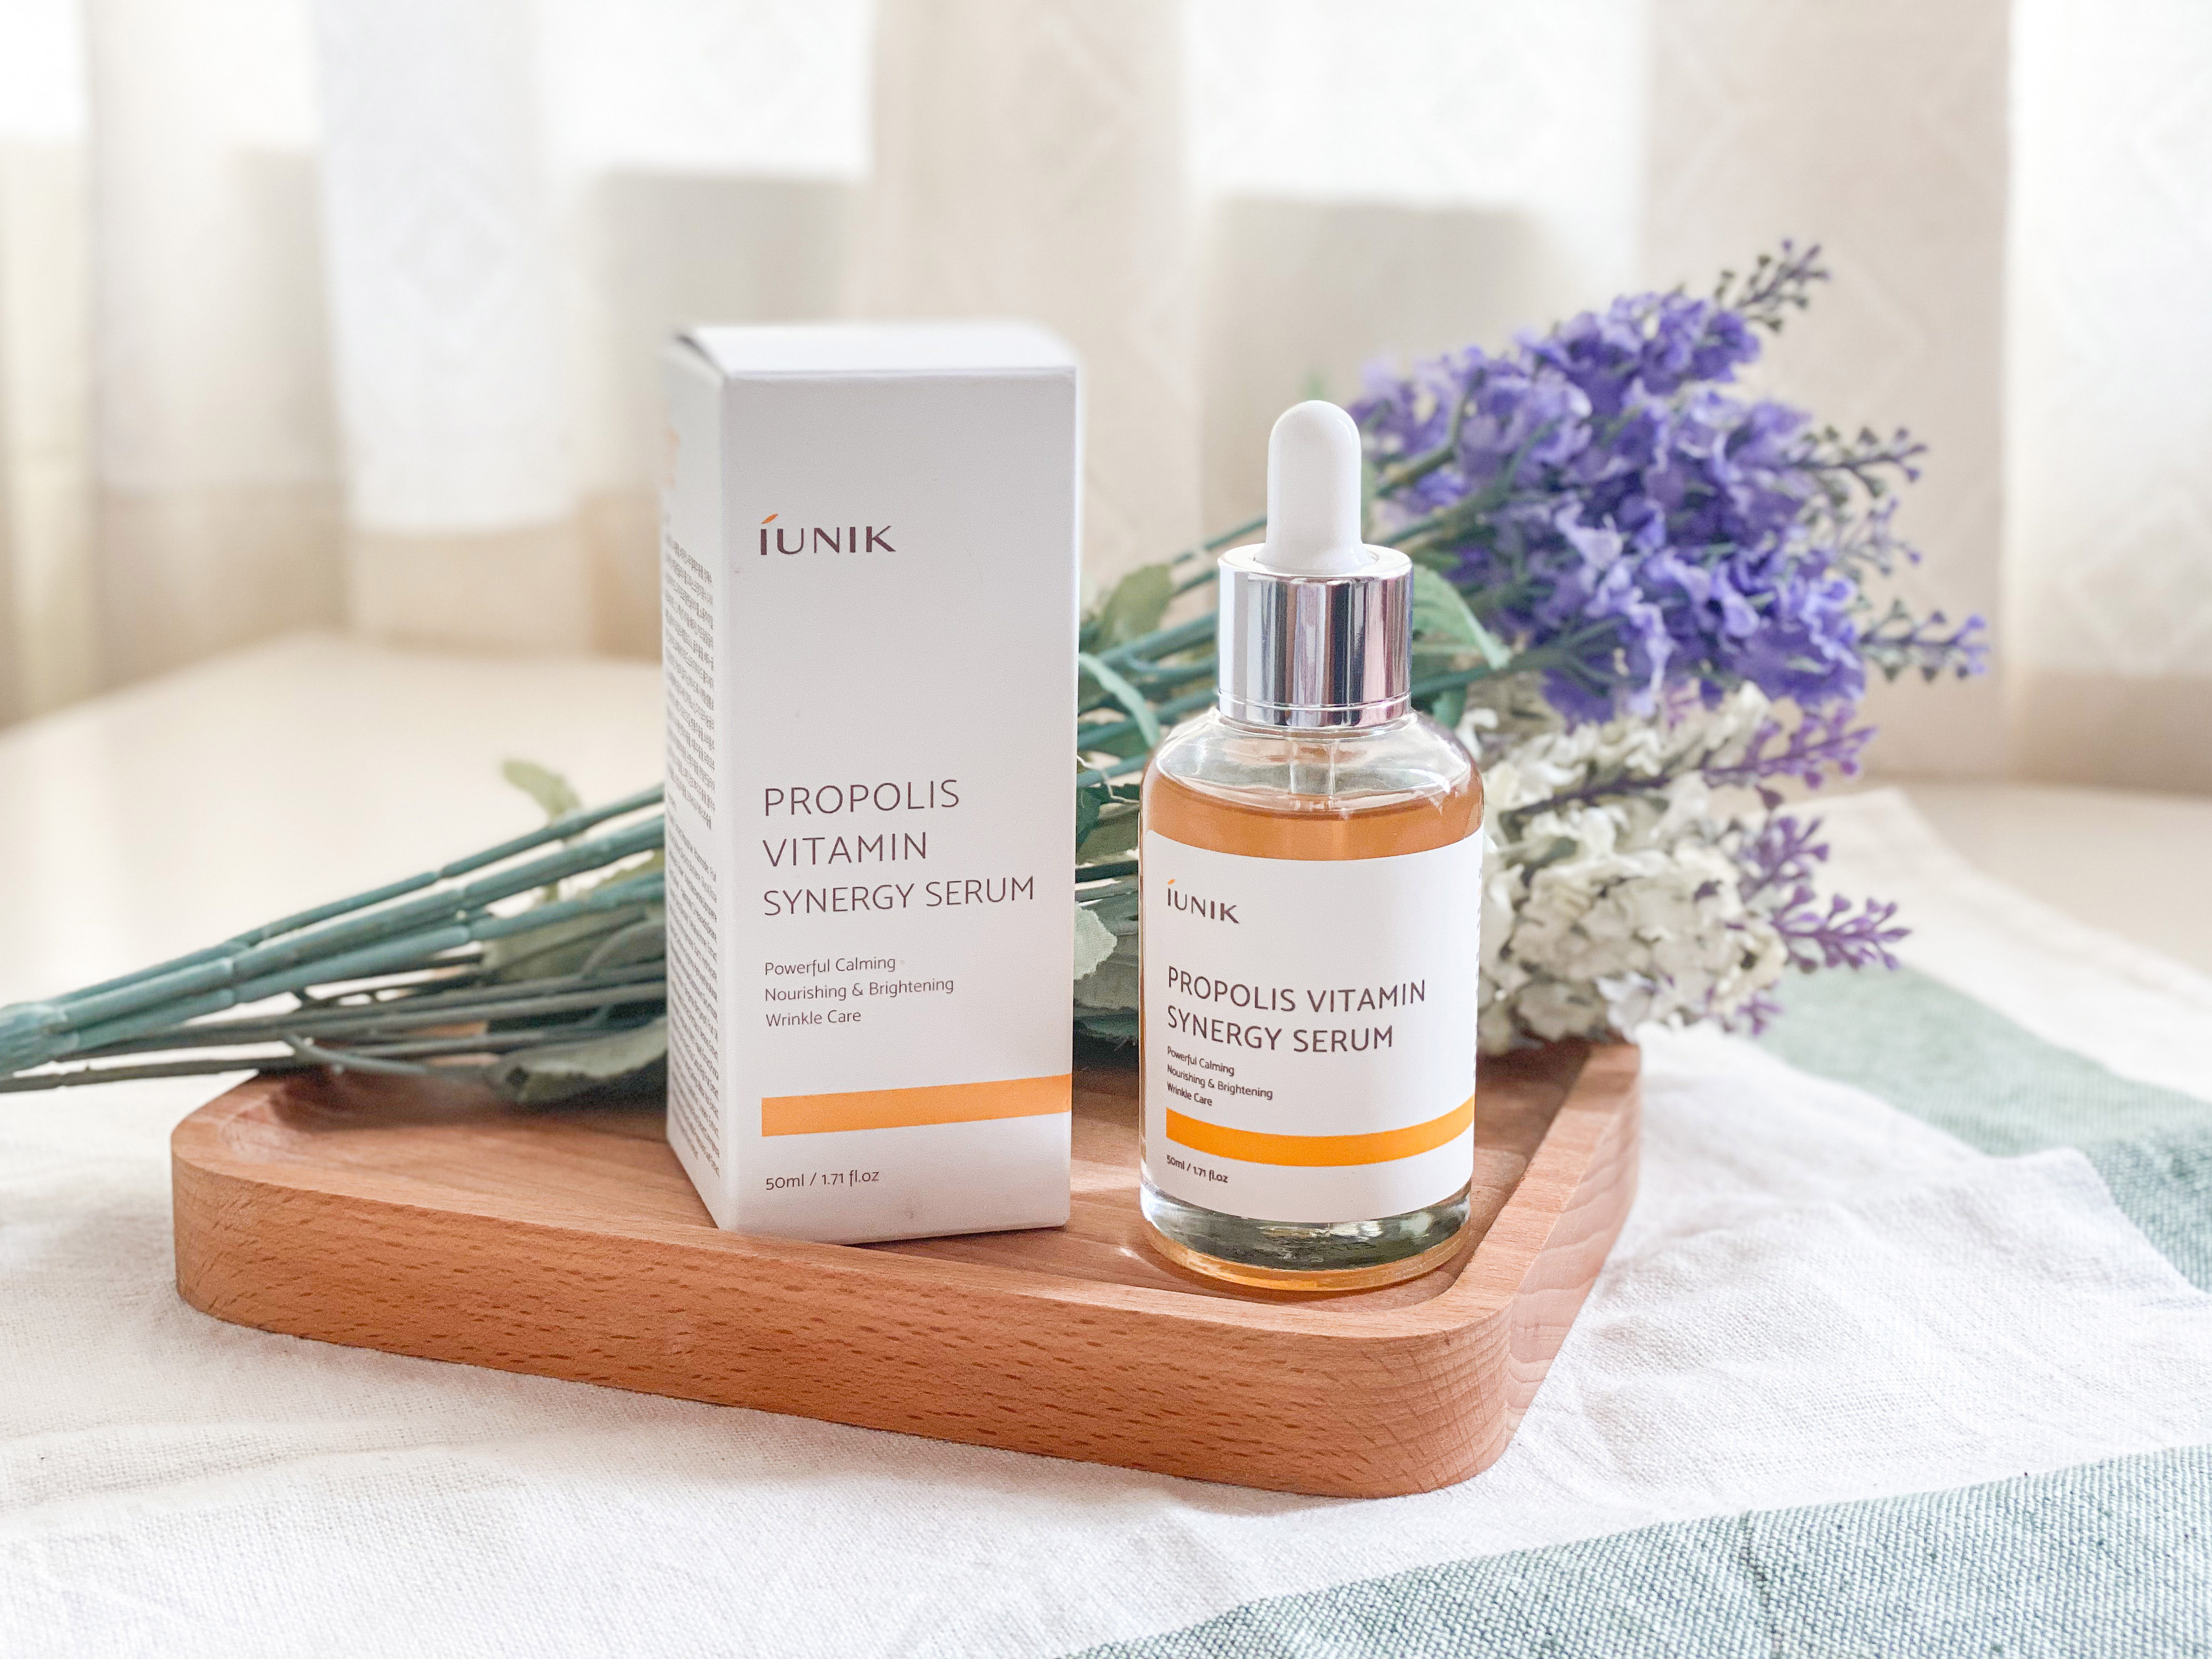 REVIEW | IUNIK Propolis Vitamin Synergy Serum